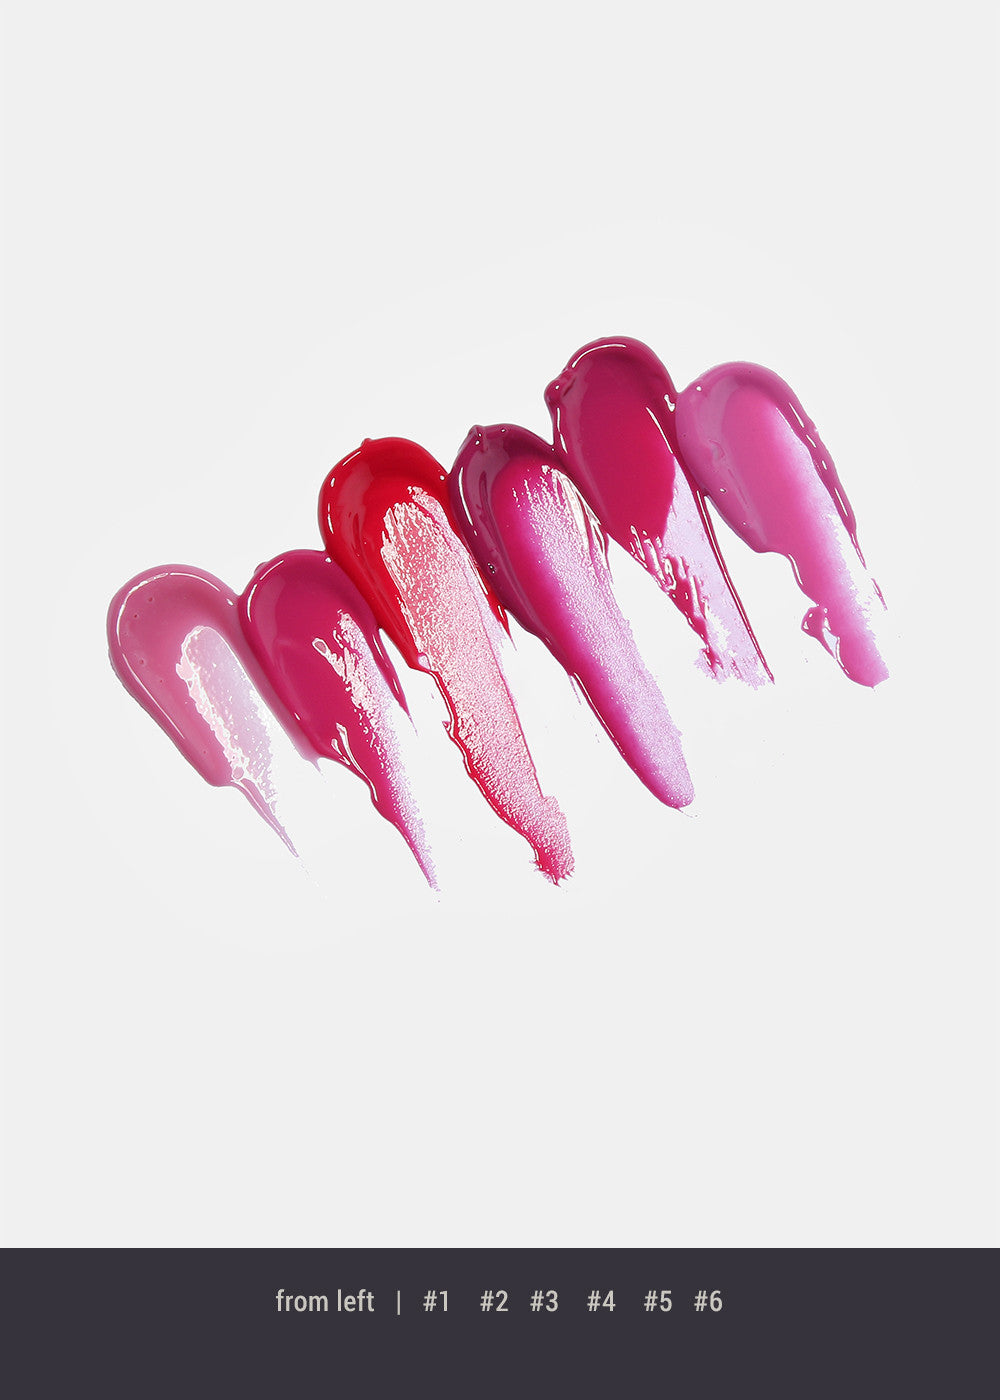 2 in 1 Tinted Lip Plumping Gloss